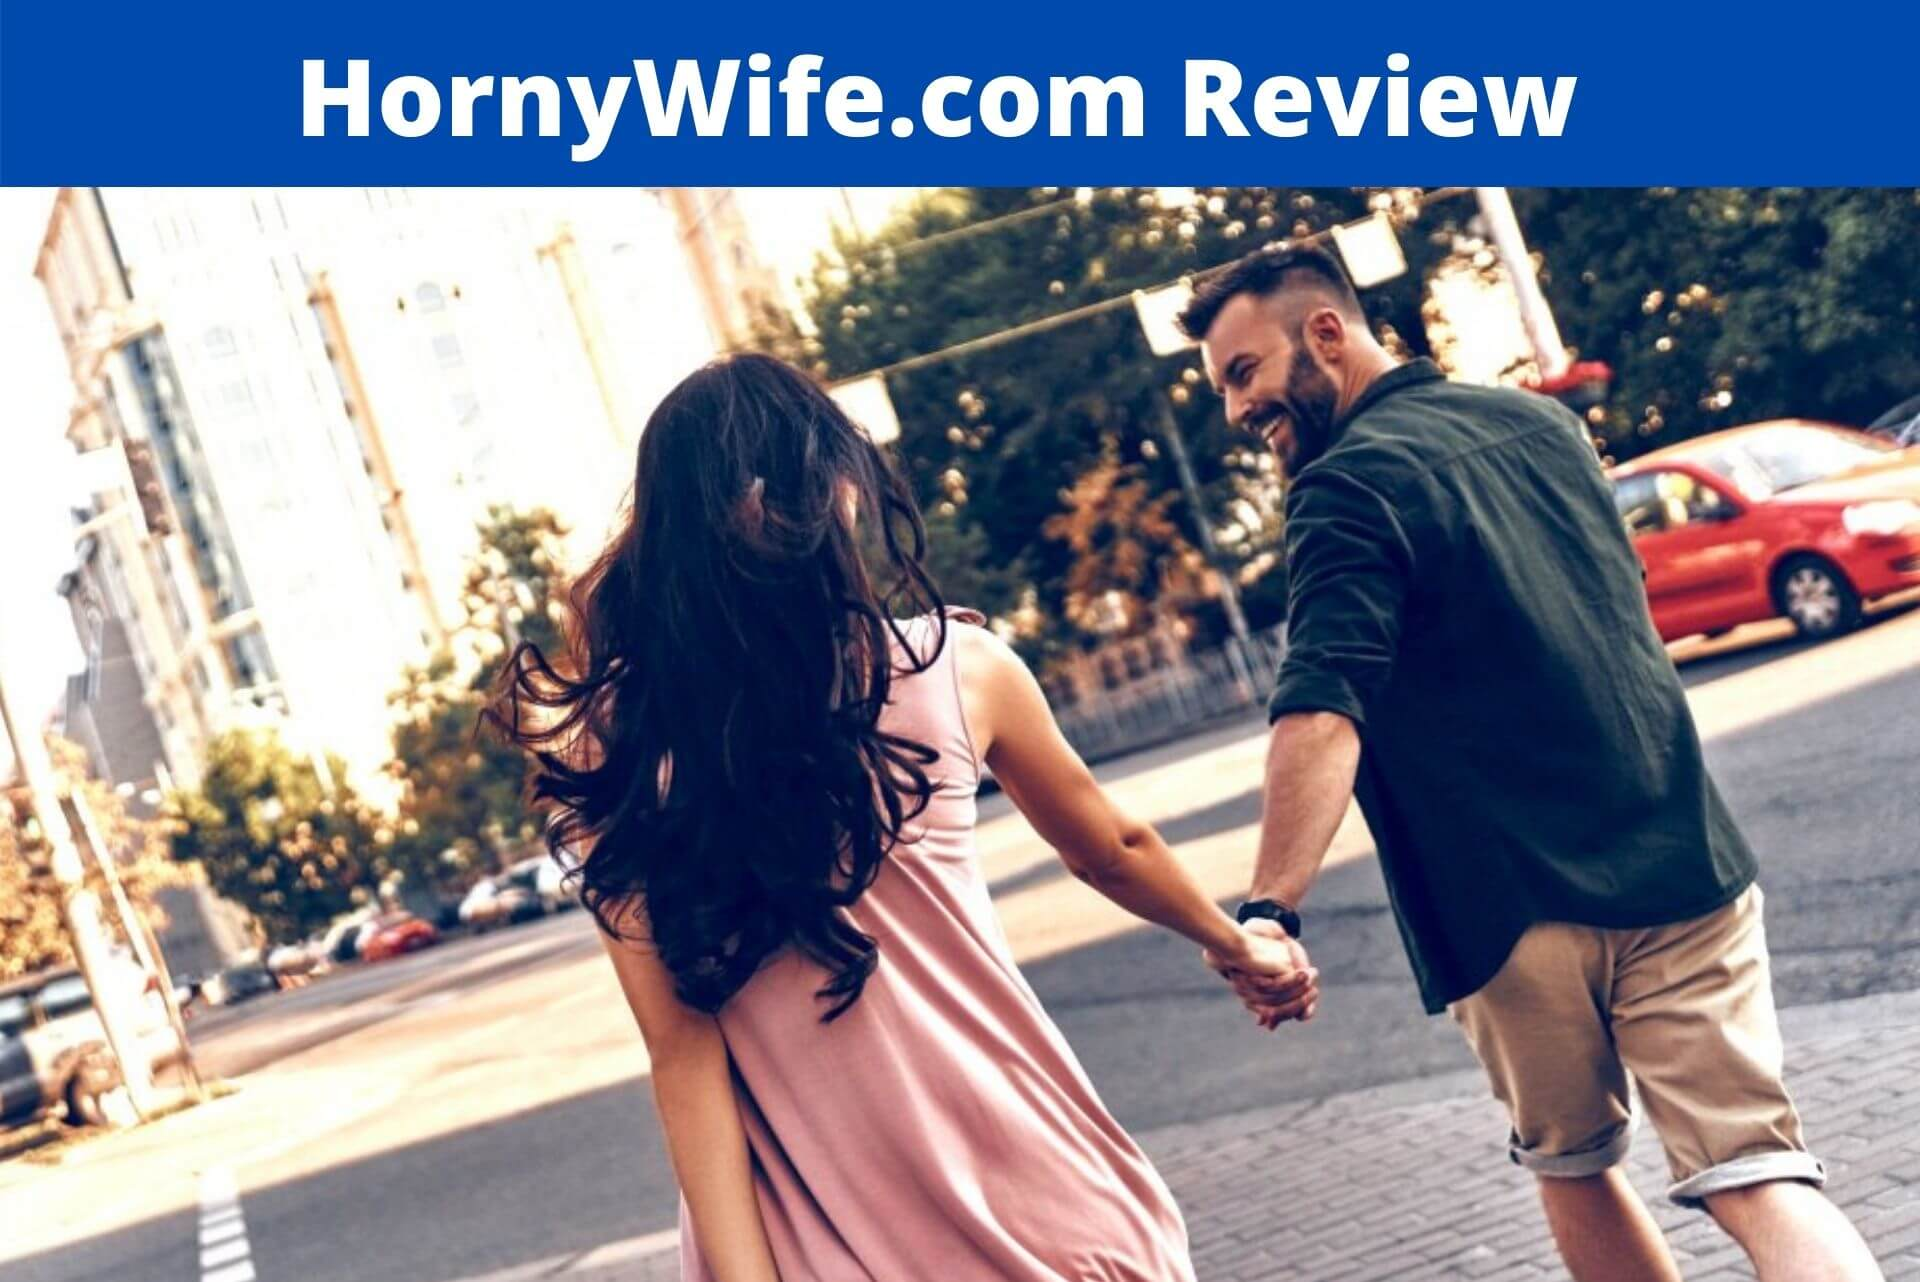 HornyWife.com Review